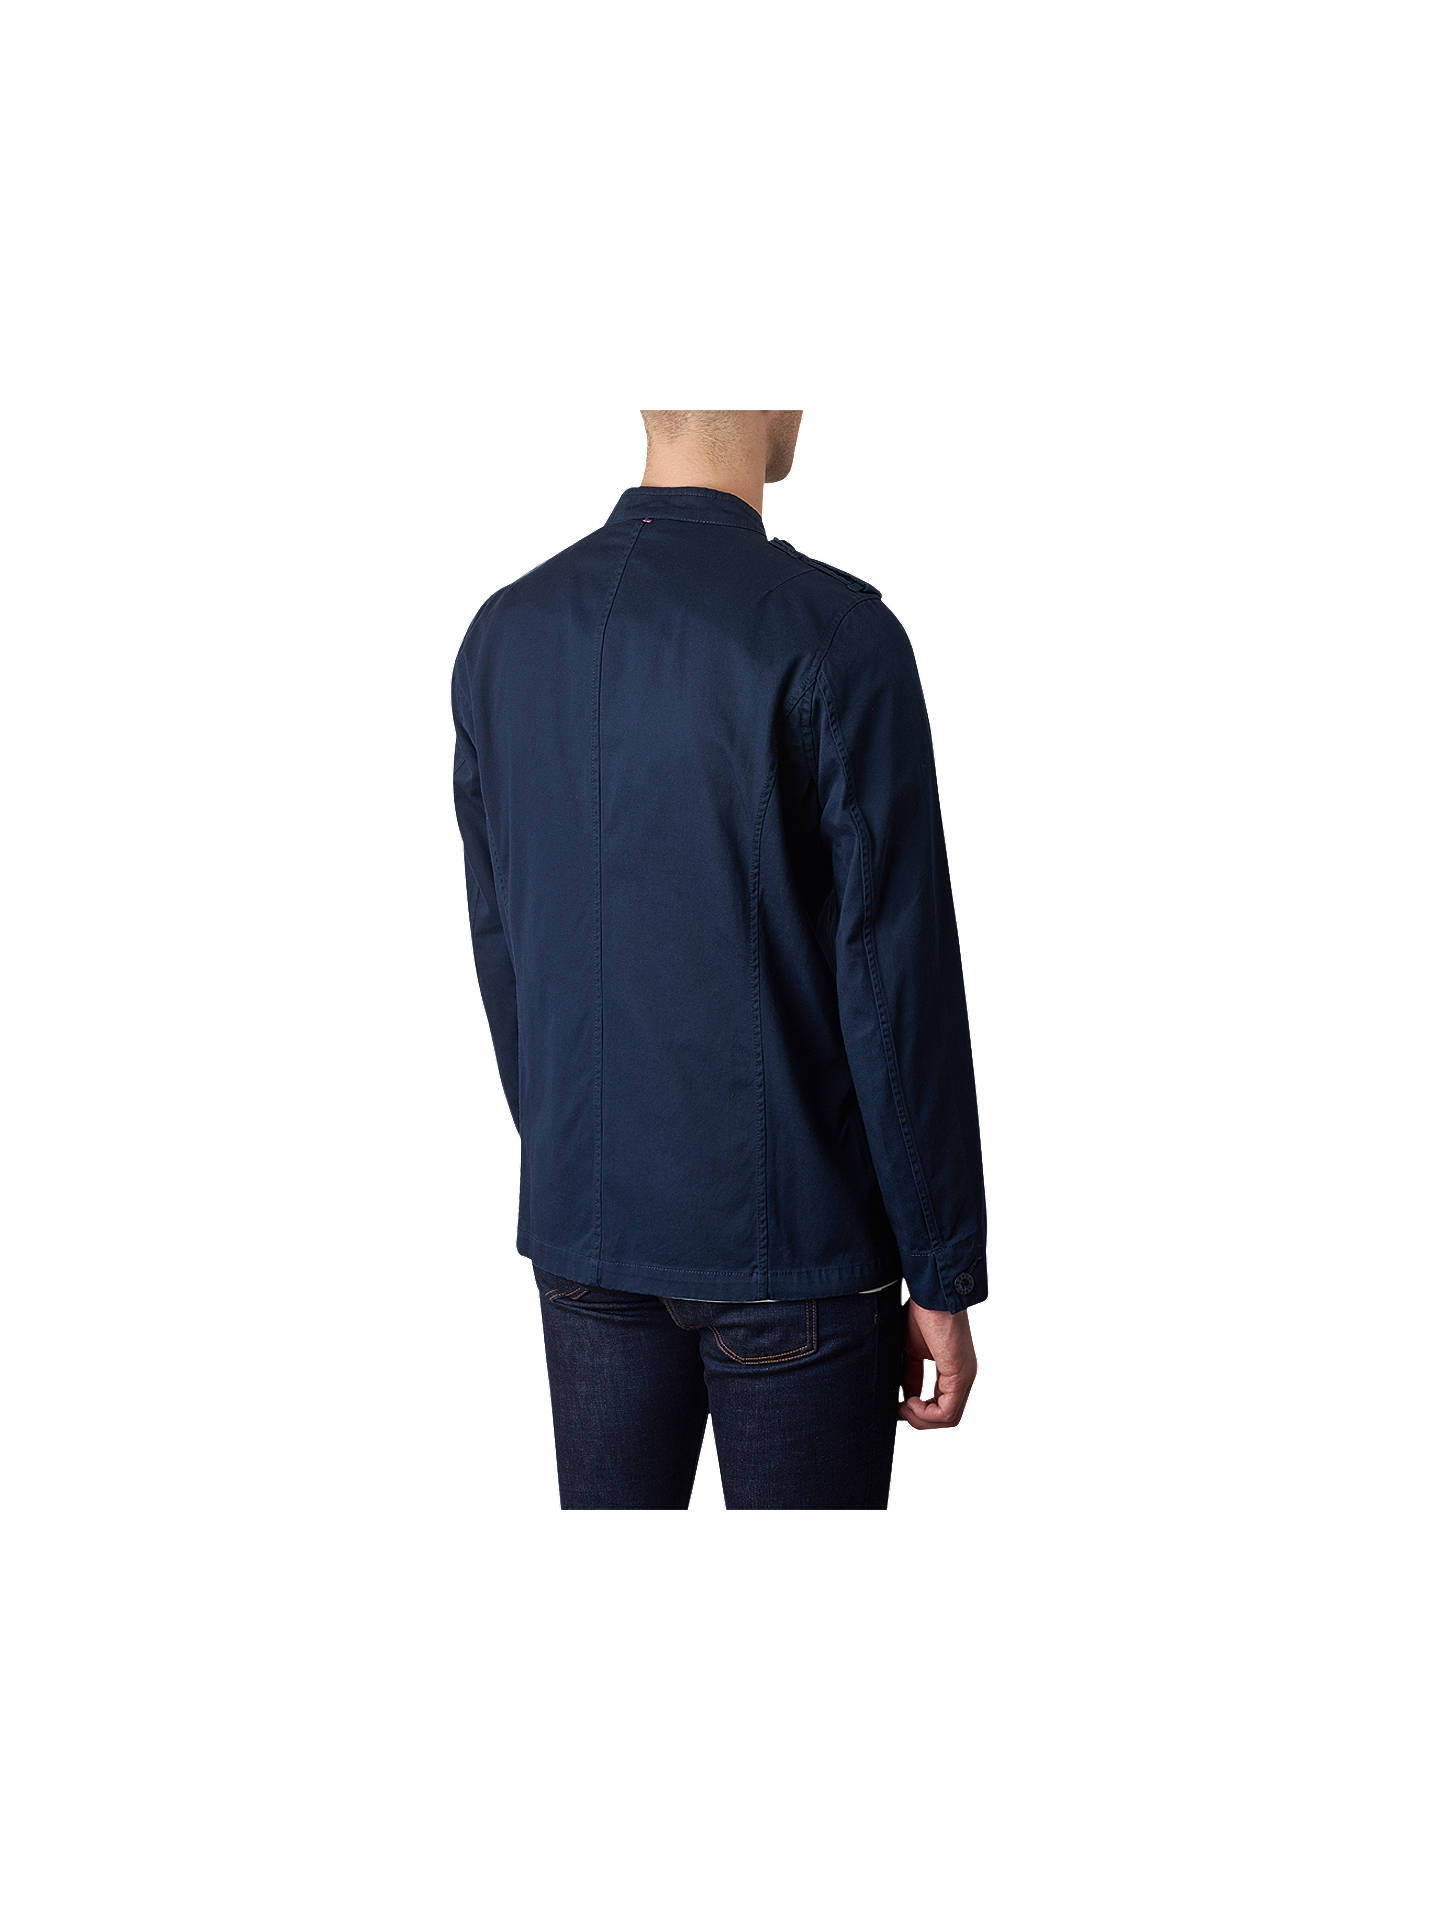 a3c368ce0308 ... Buy Pretty Green Langford Military Jacket, Navy, S Online at  johnlewis.com ...